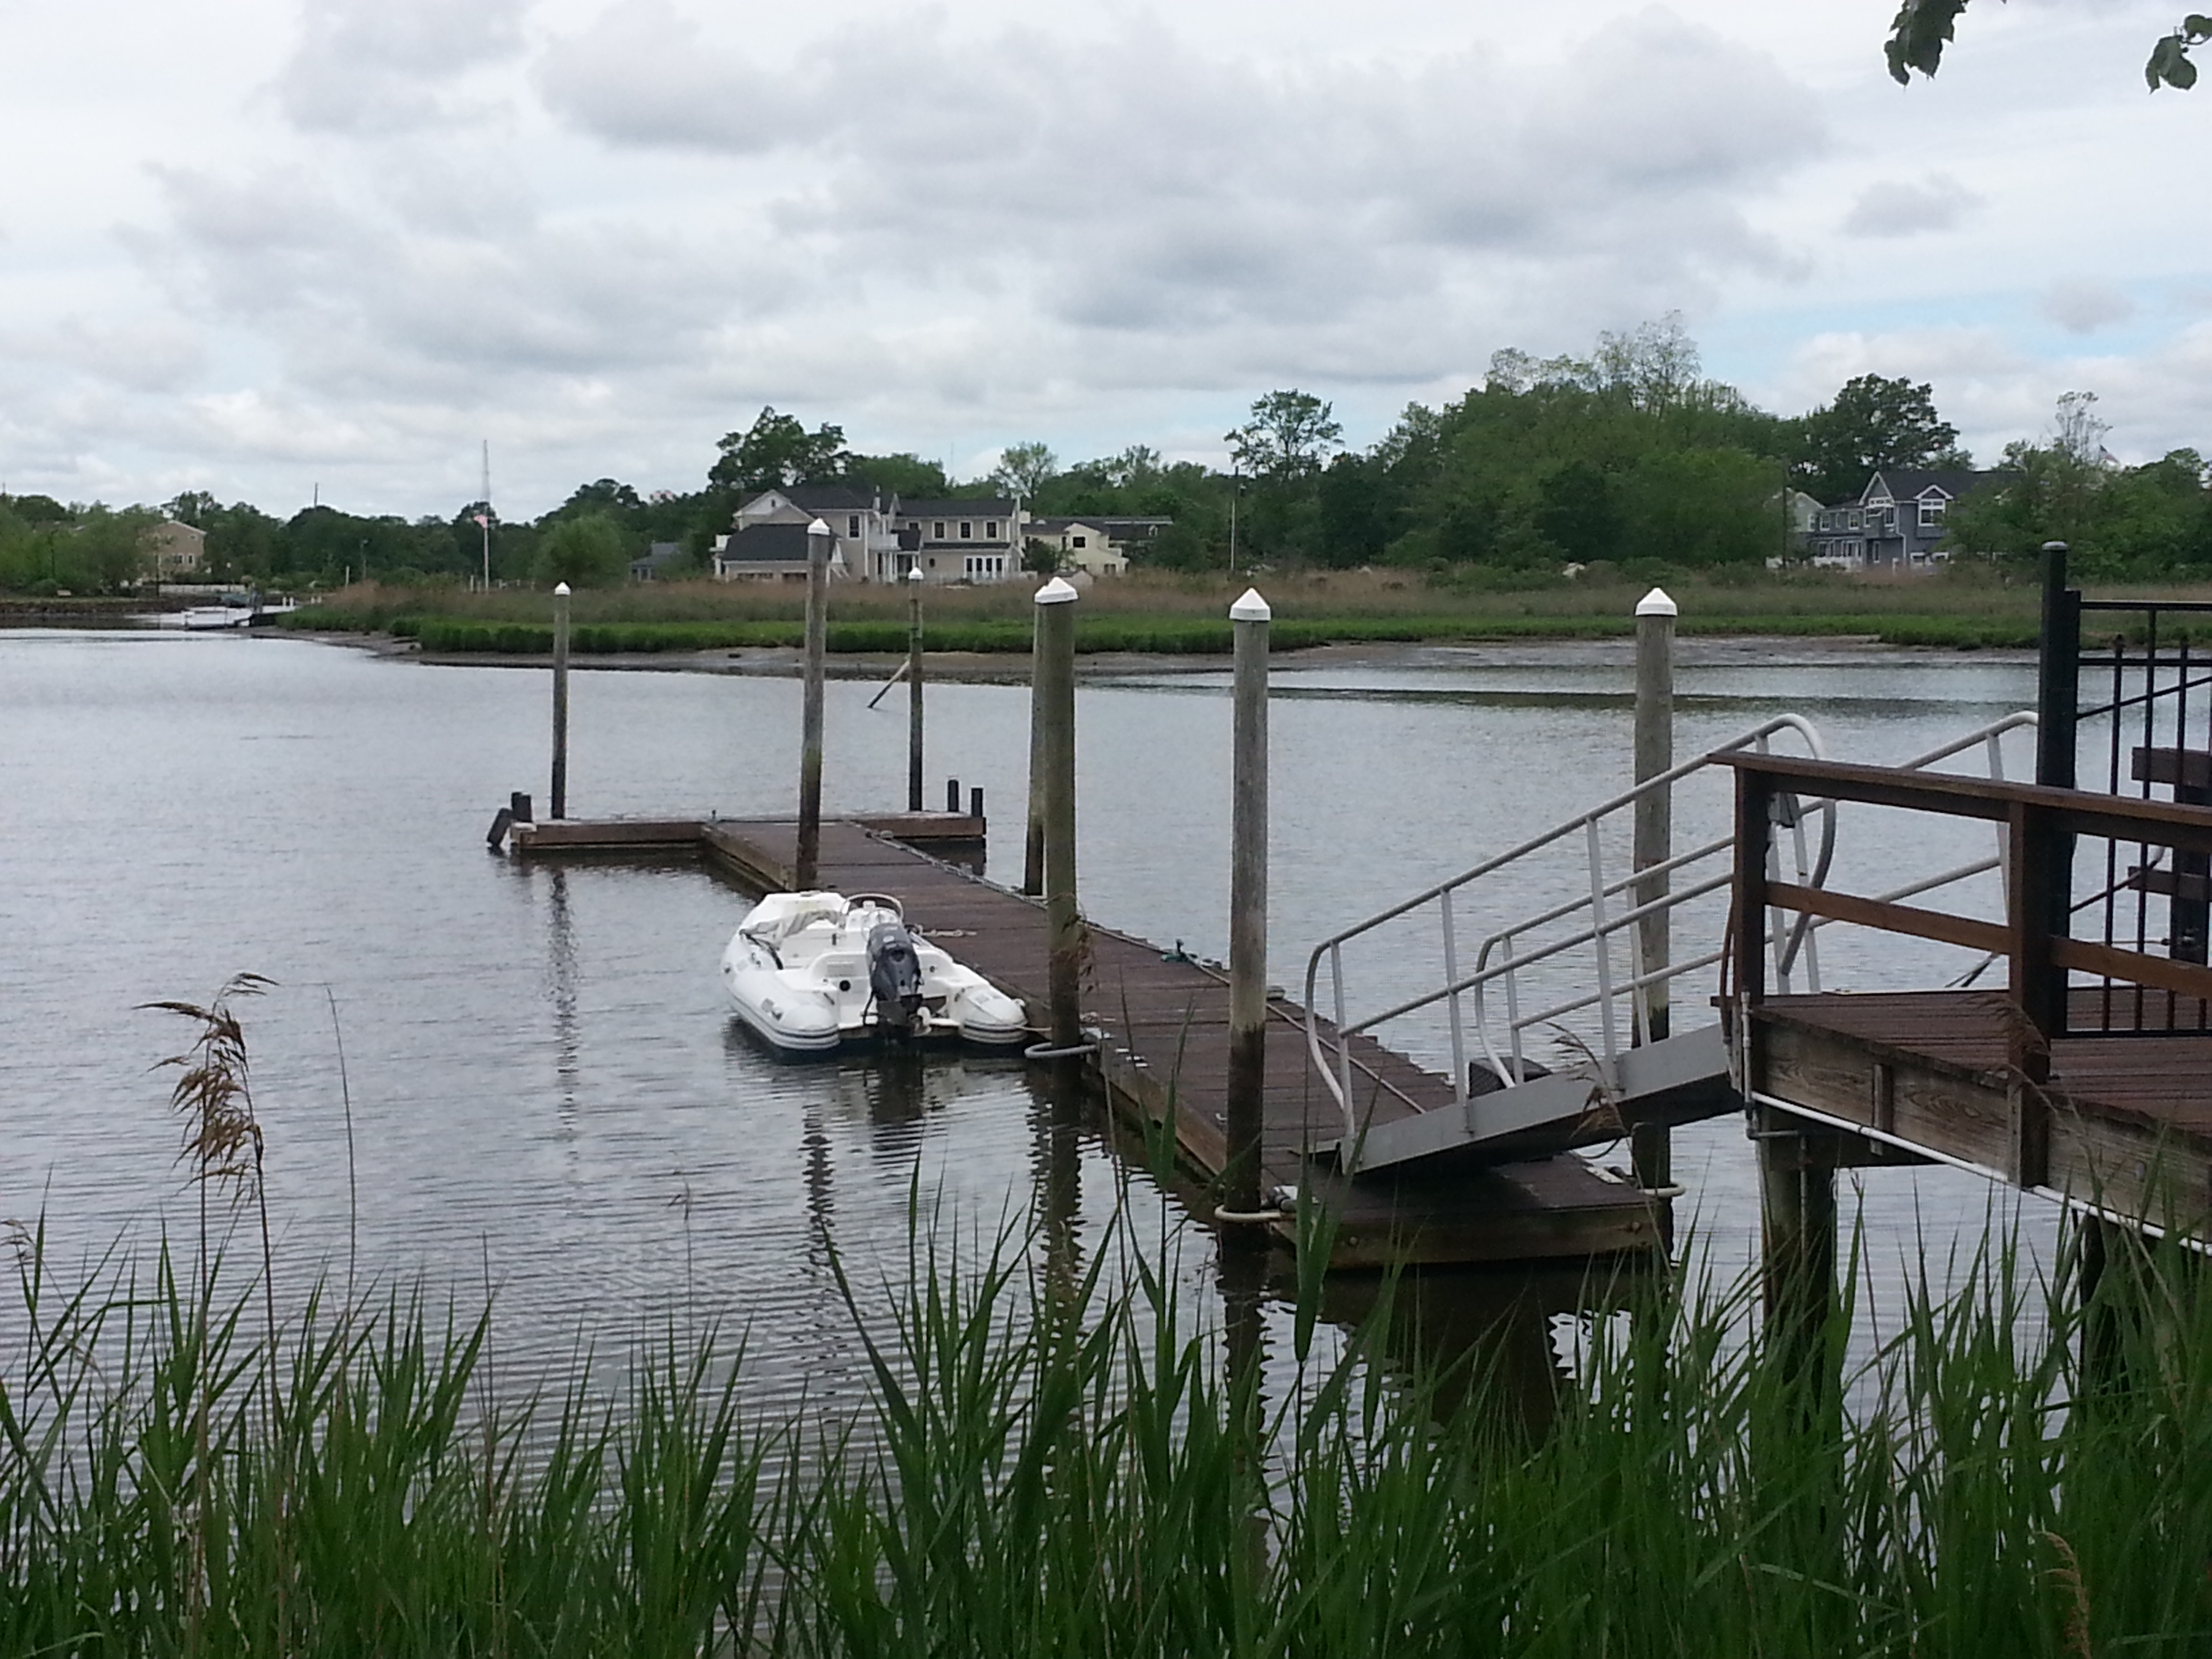 Bridgewaters has a community dock where residents can moor a boat.